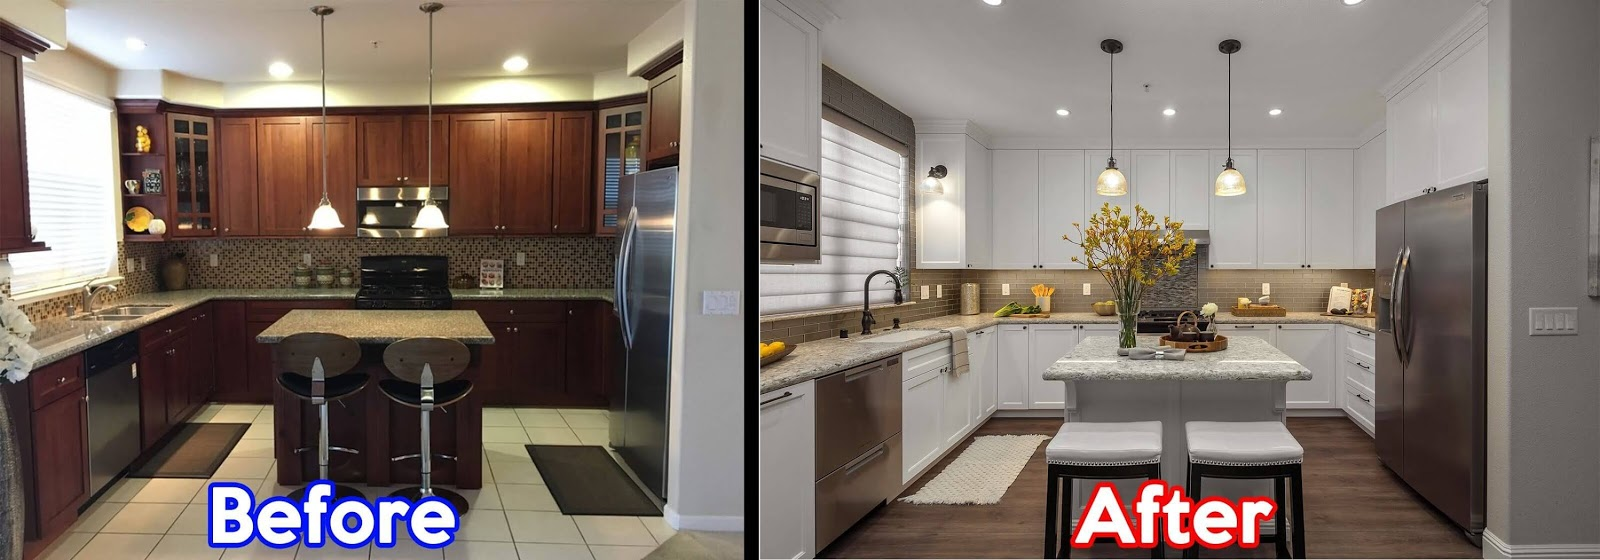 Before And After Open Townhouse Kitchen Remodel In San